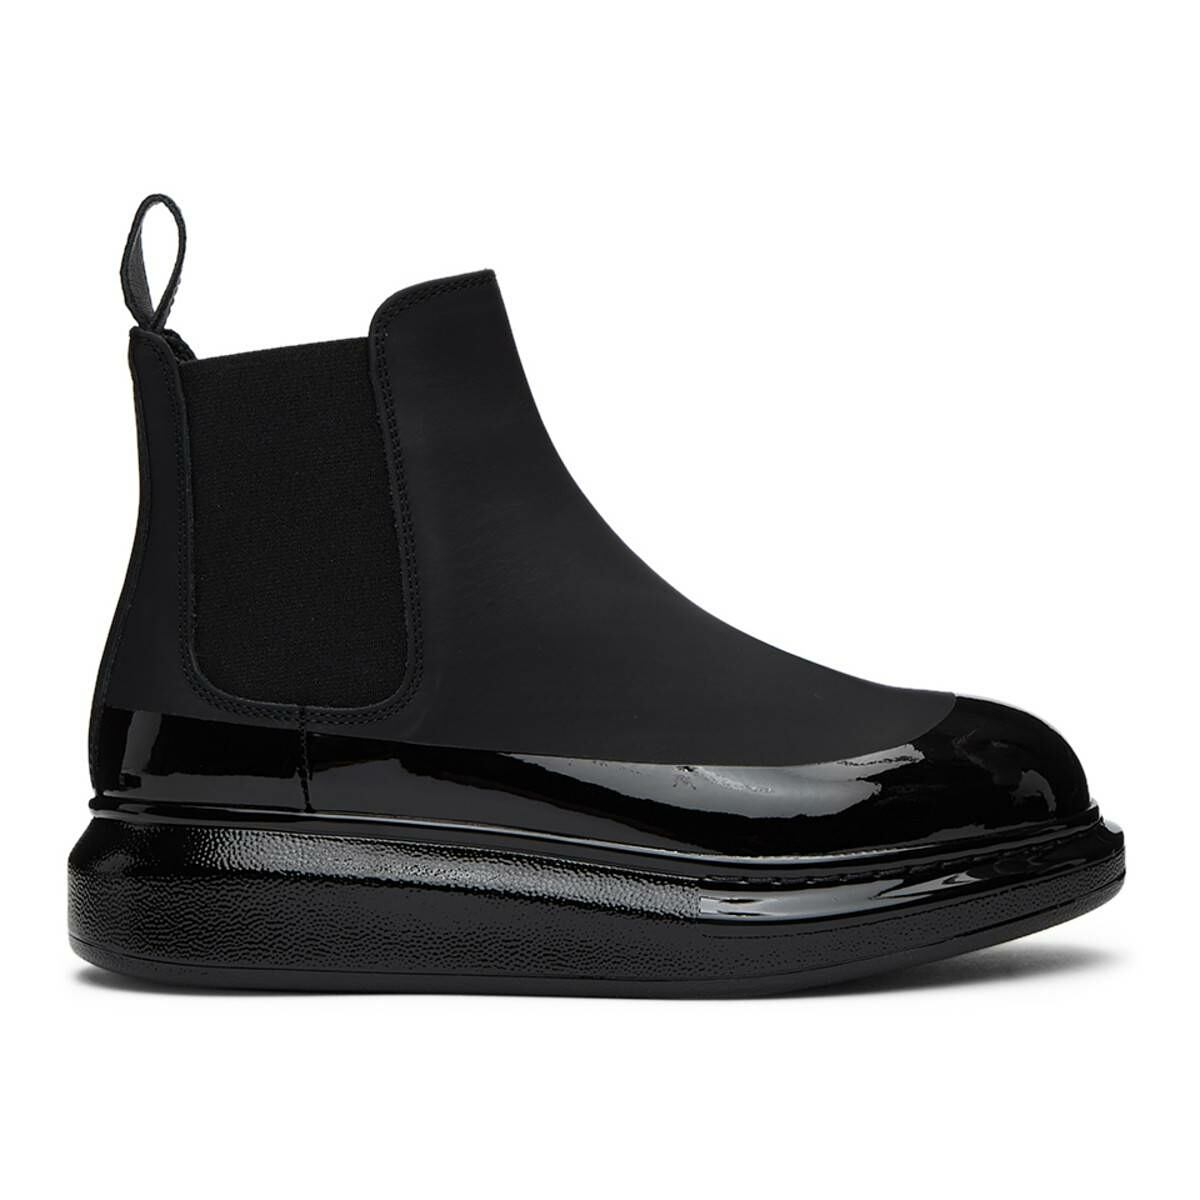 Alexander McQueen Black Coated Hybrid Chelsea Boots Ssense USA WOMEN Women SHOES Womens ANKLE BOOTS